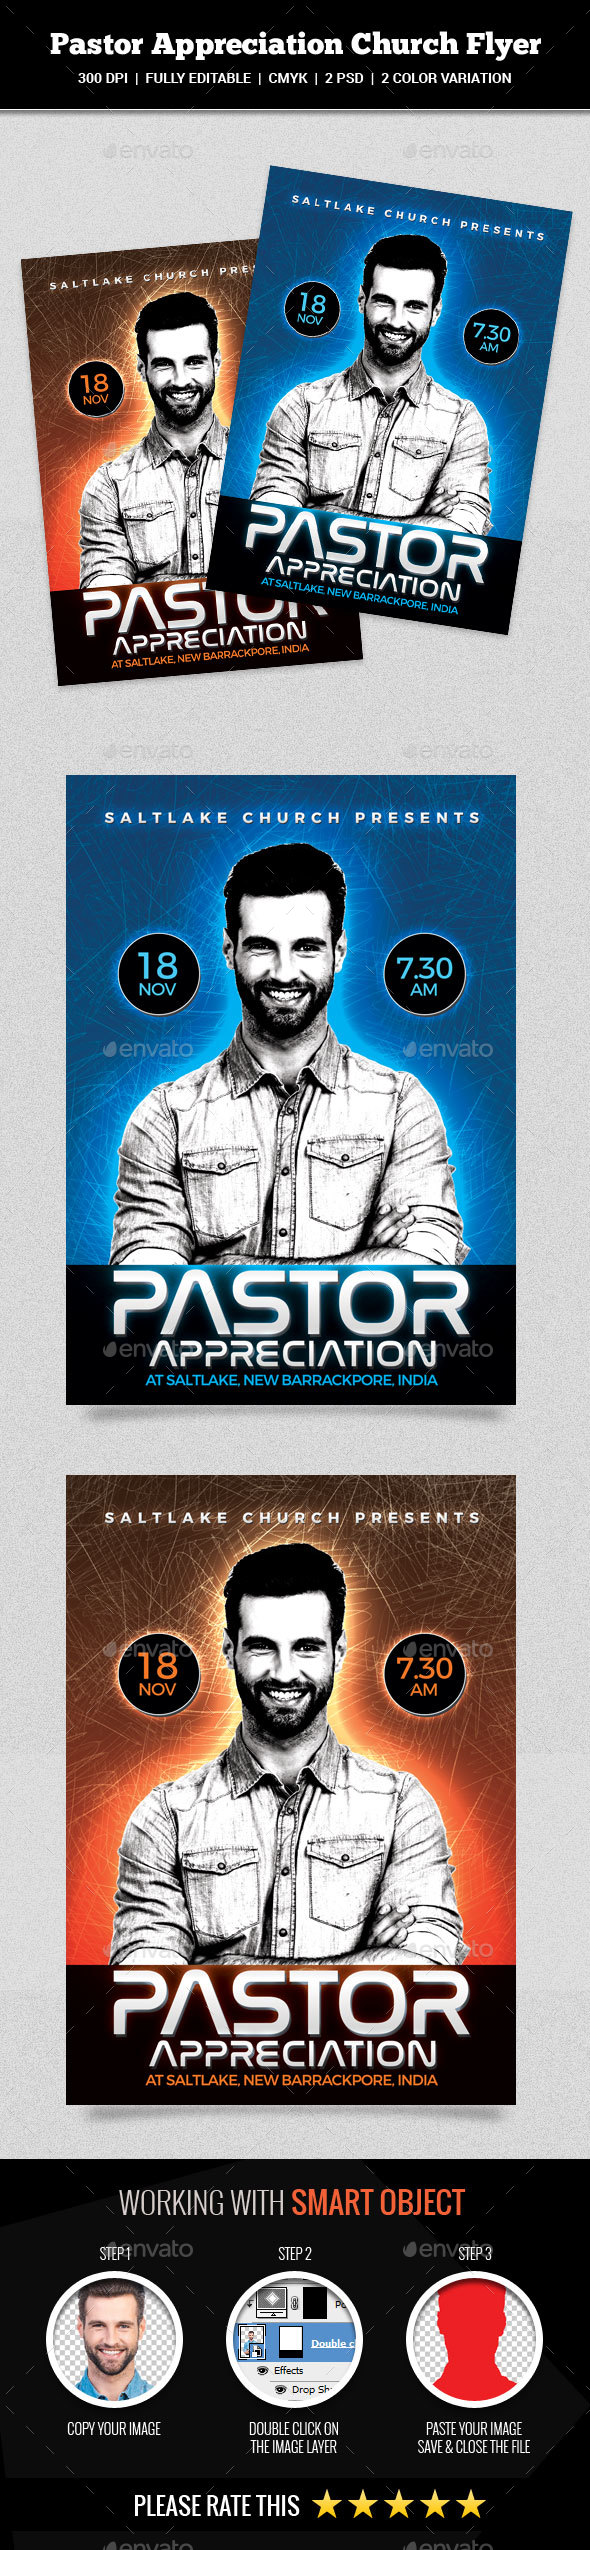 Pastor Appreciation Church Flyer - Church Flyers